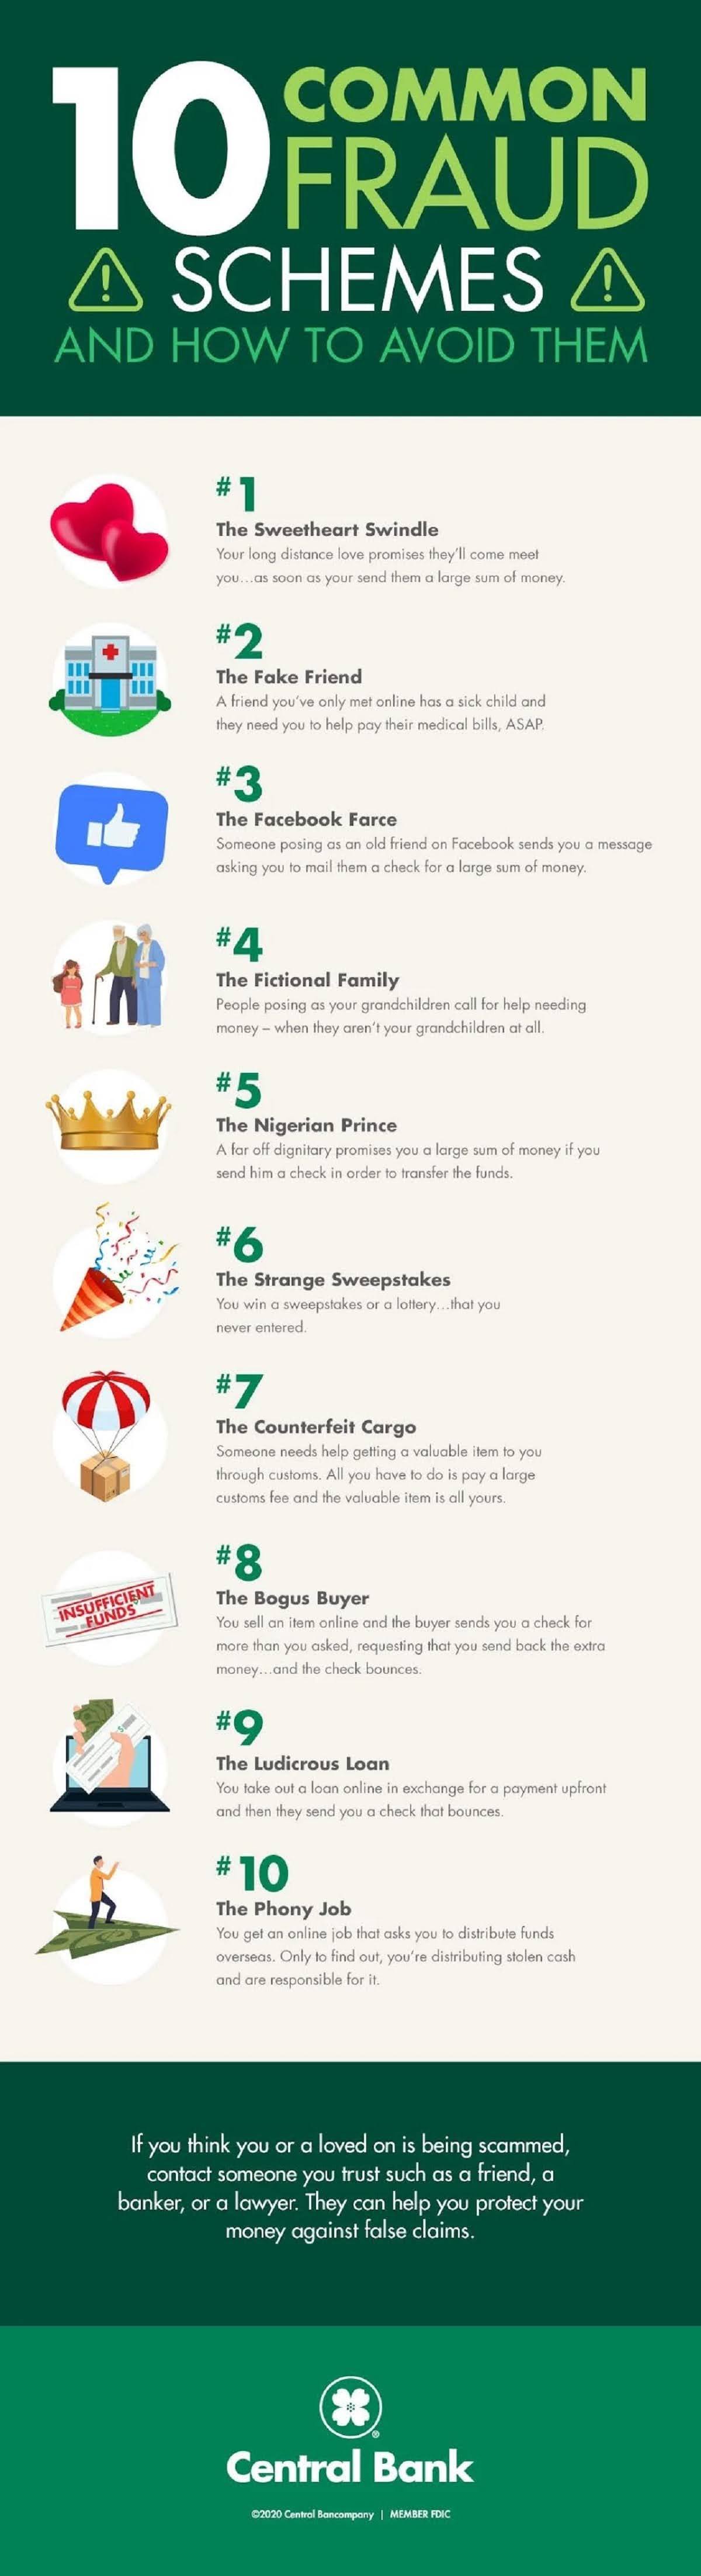 10-common-fraud-schemes-and-how-to-protect-your-money-infographic